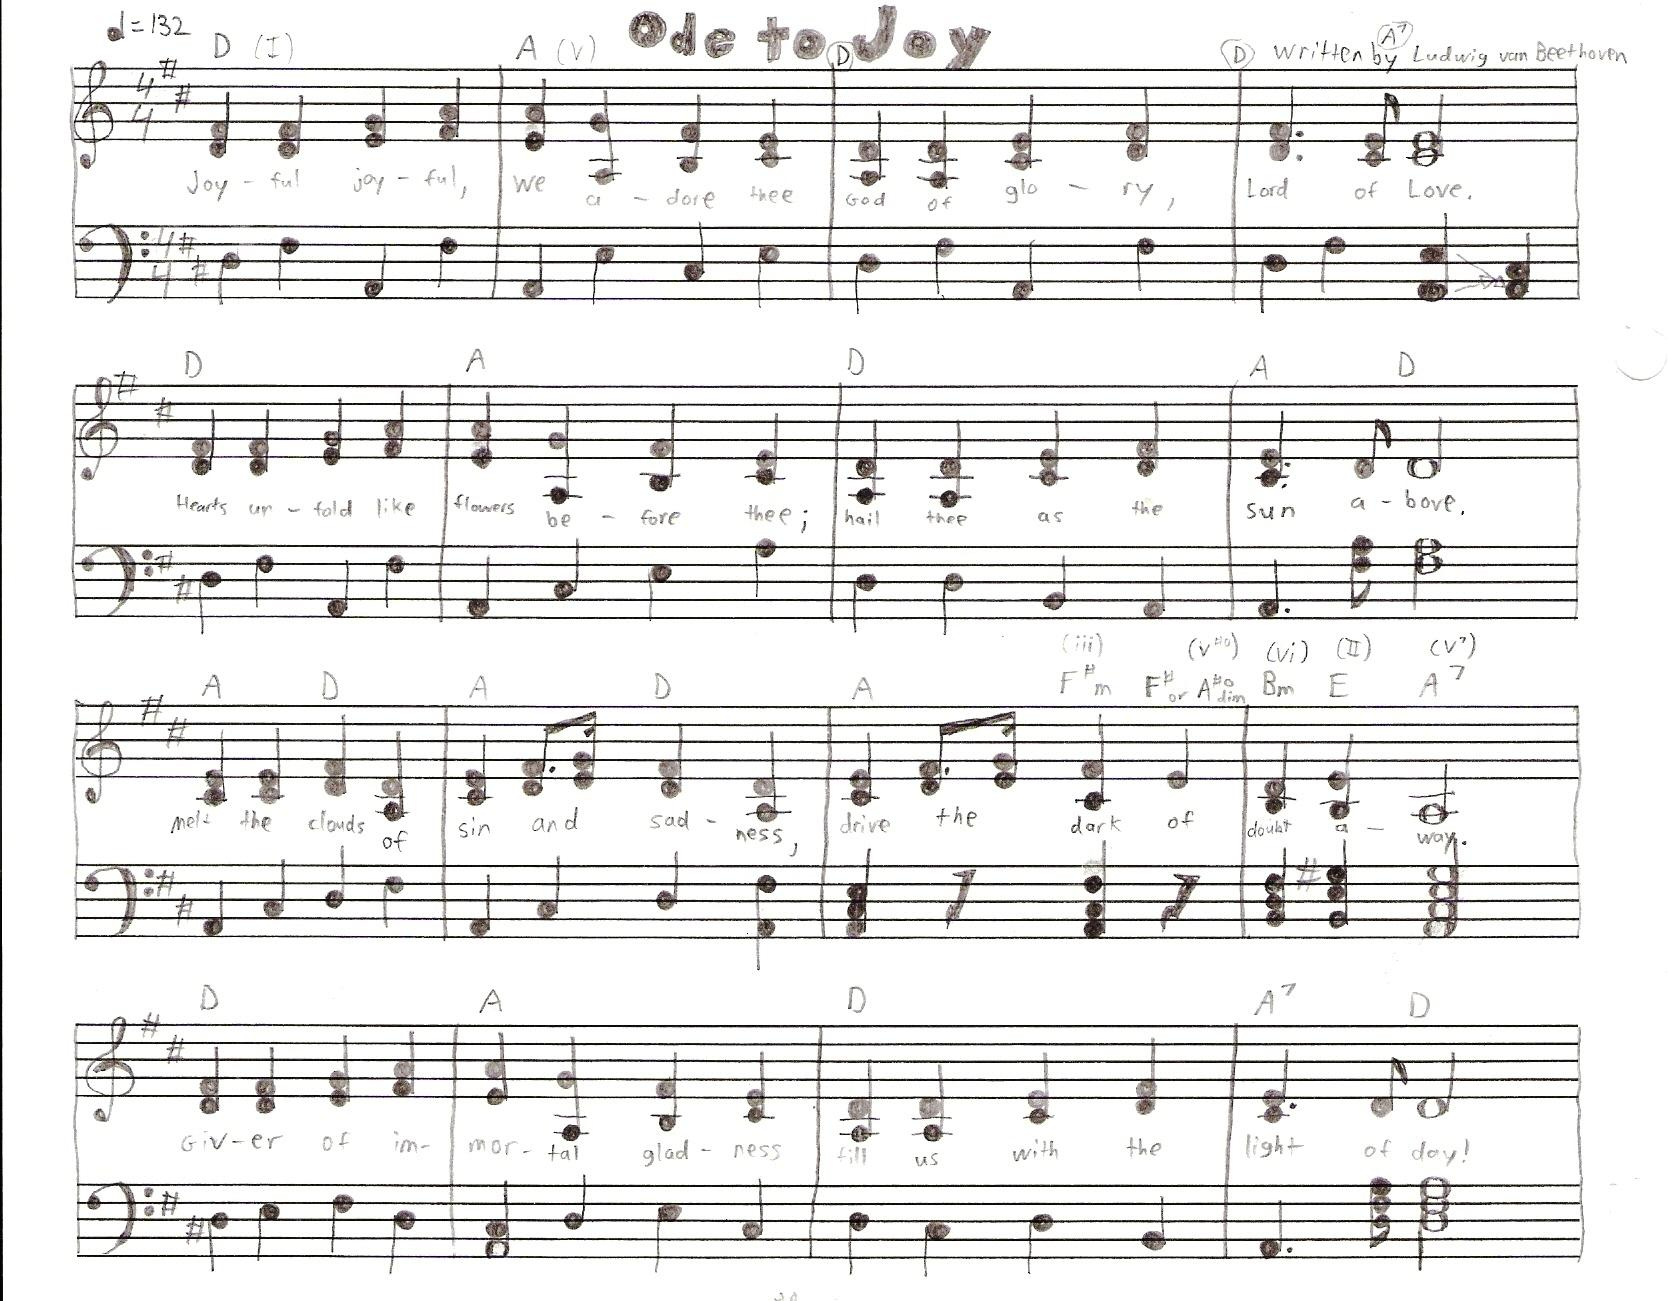 ode to joy This famous melody comes from the final movement of beethoven's choral symphony no9 in d minor, op125 it is a setting for choir and orchestra of the german poet schiller's 1785 poem an die freude the ode to joy was adopted as europe's anthem by the council of europe in 1972.